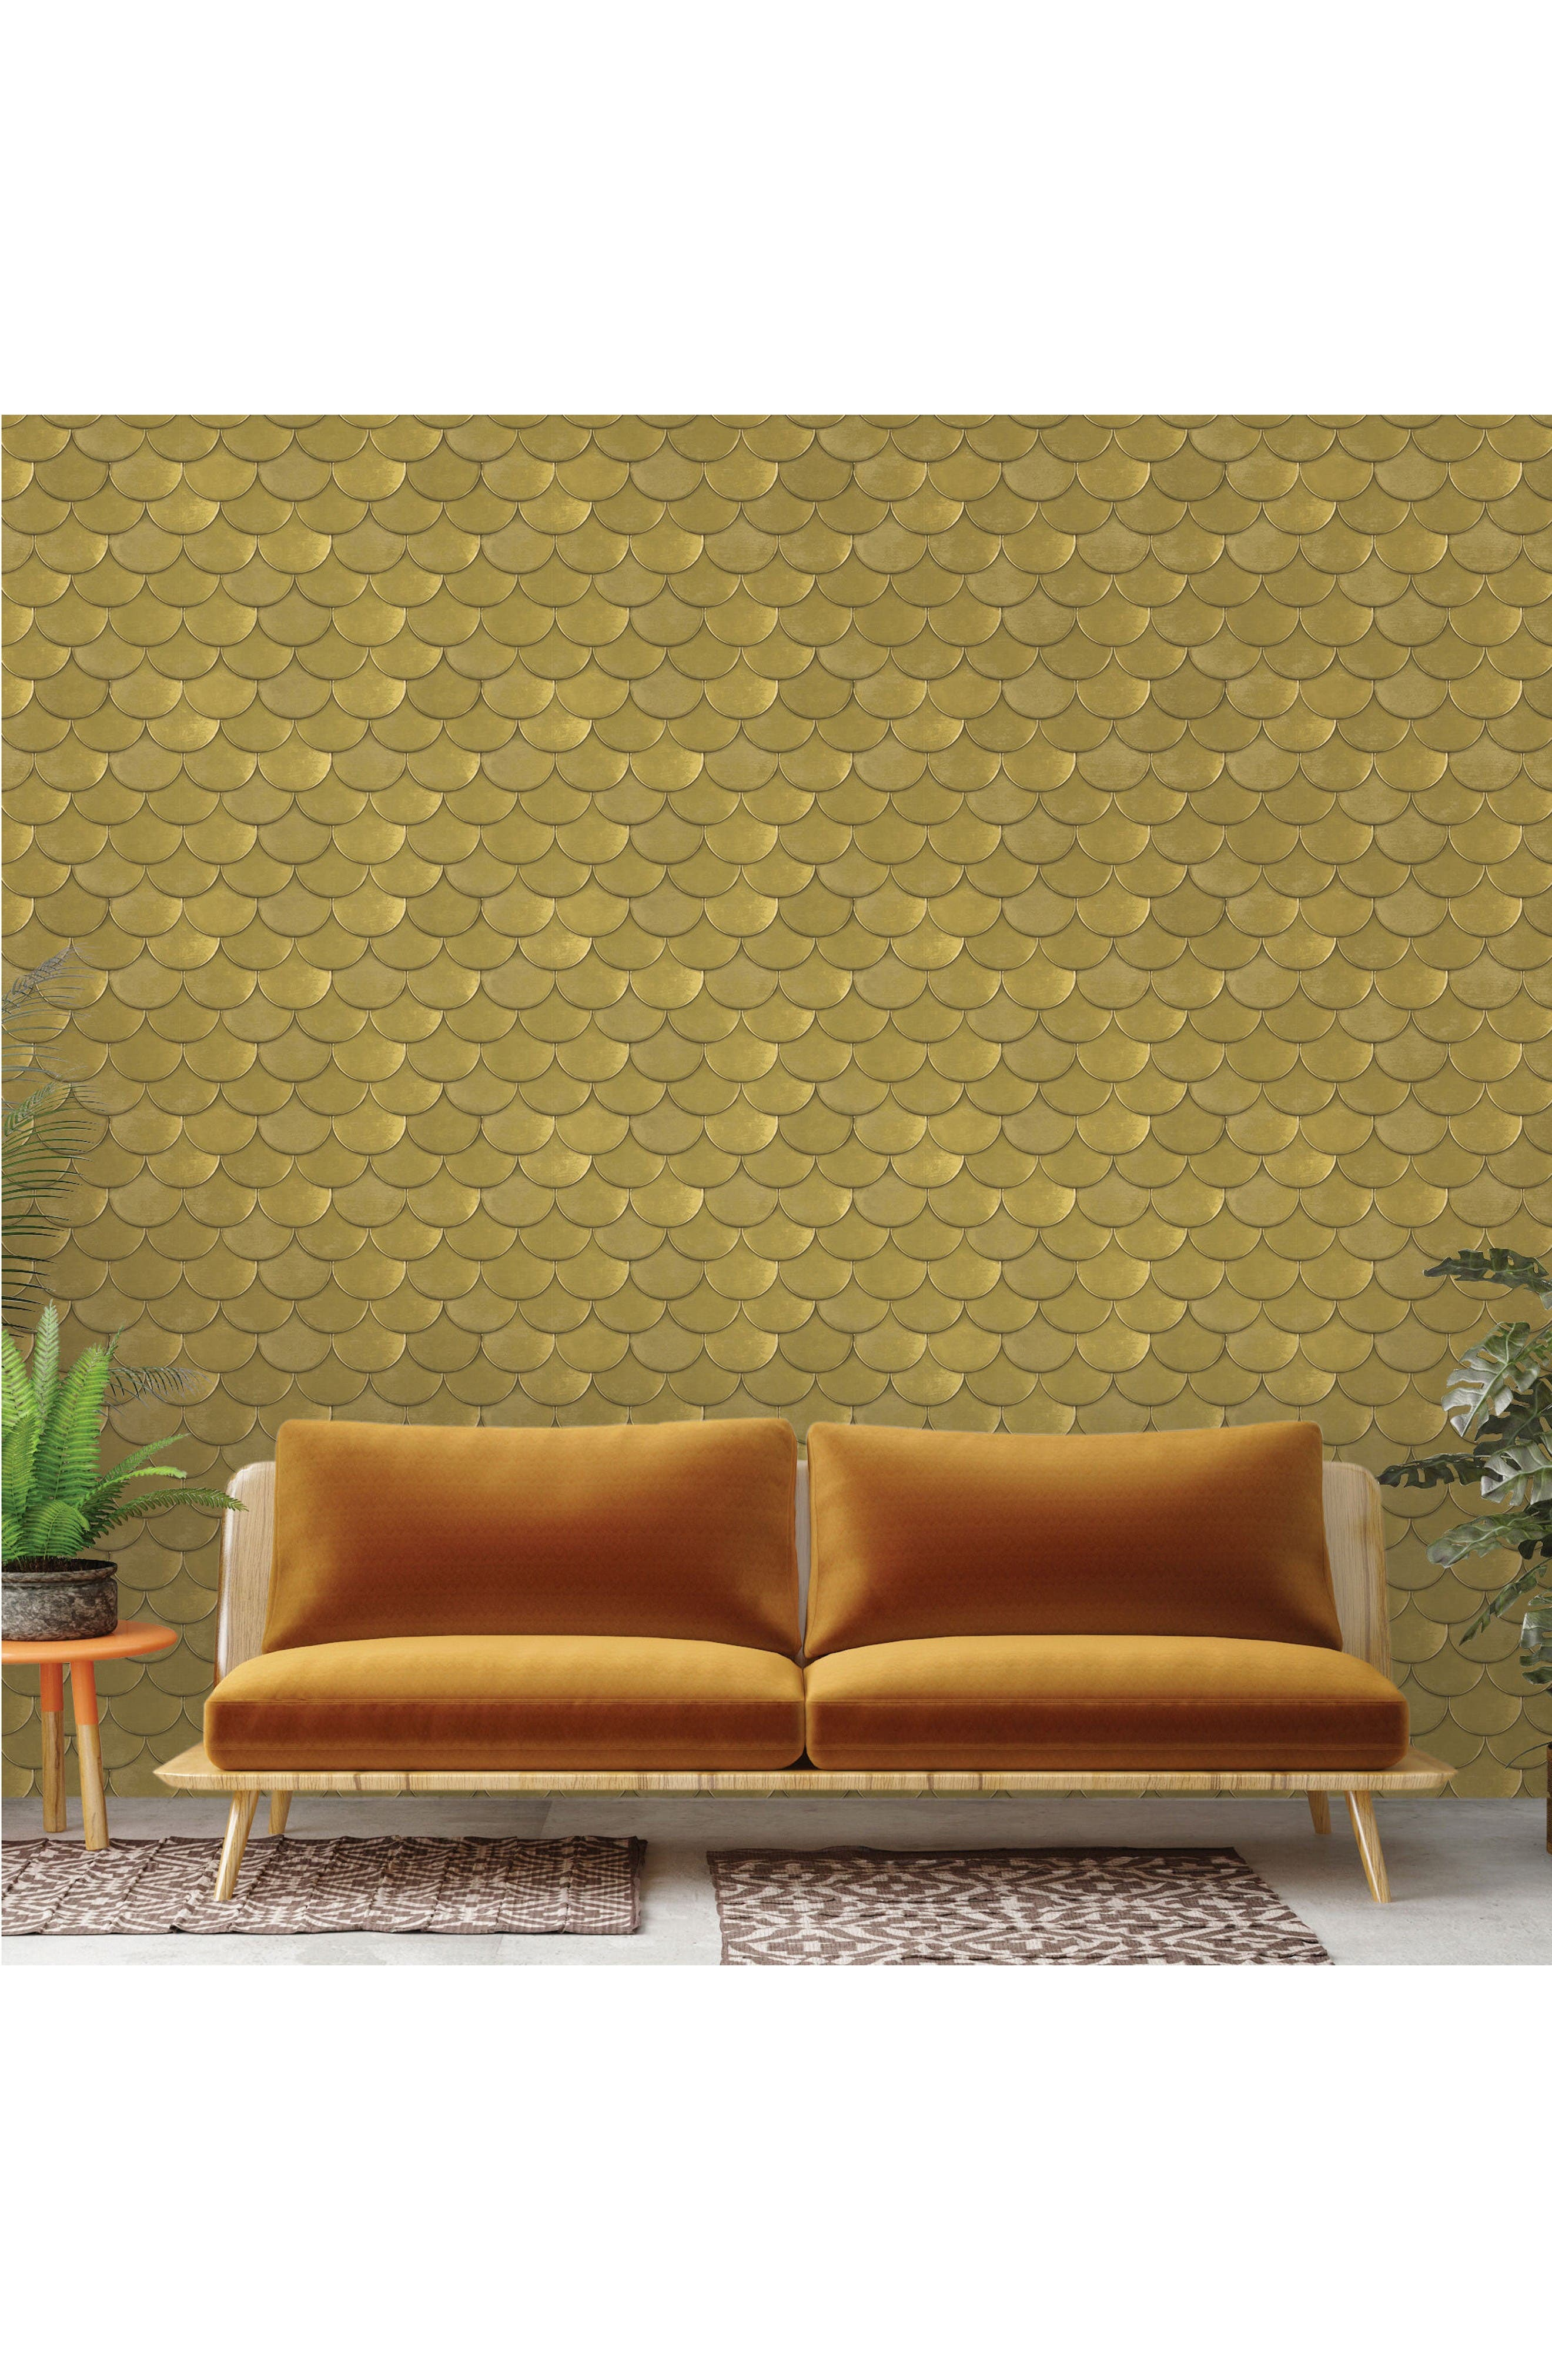 Unique Nordstrom Wall Decor Image Collection - The Wall Art ...